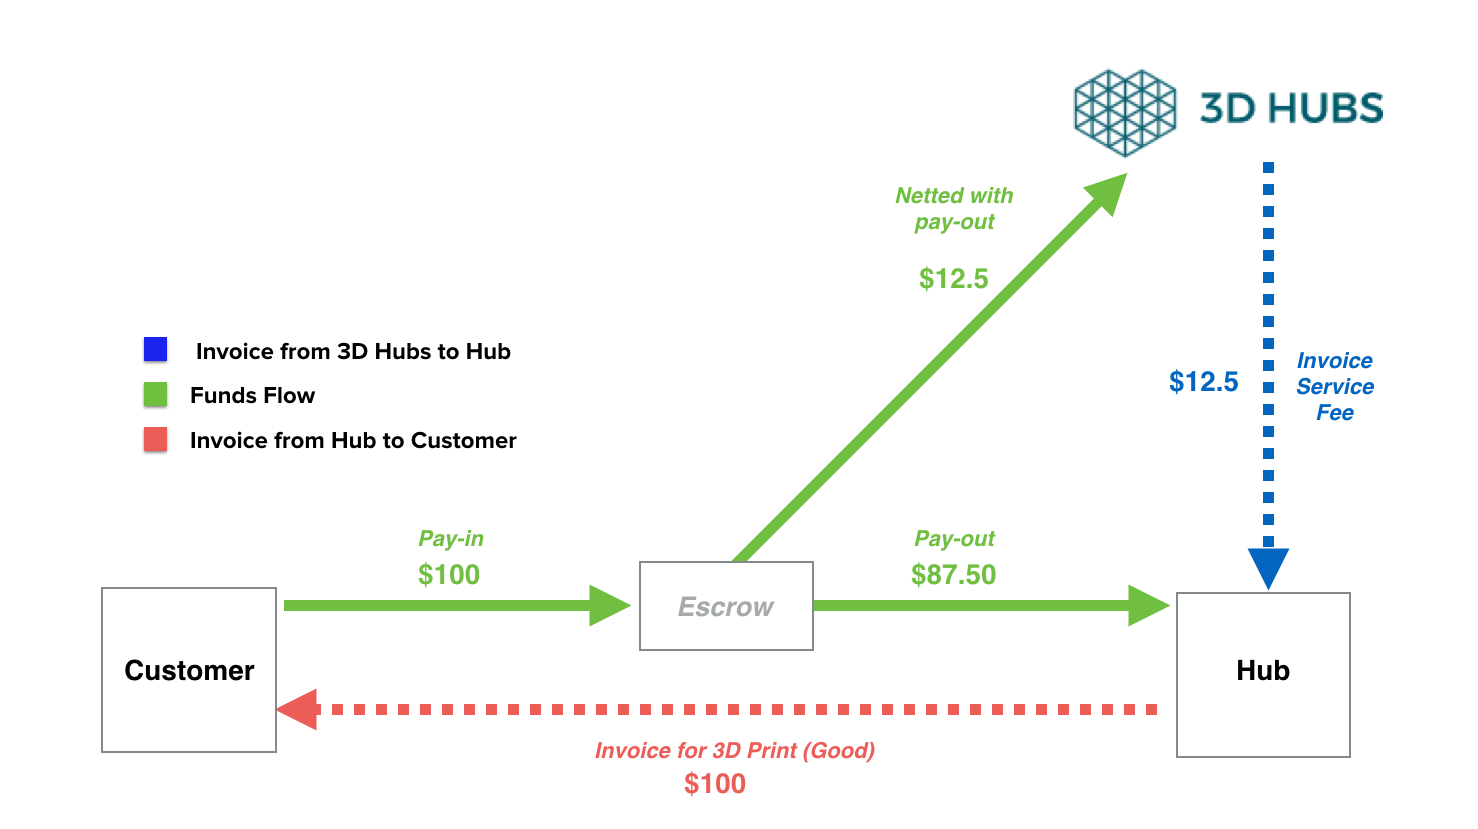 The Money Flow Service Fee D Hubs - What is invoice payment for service business